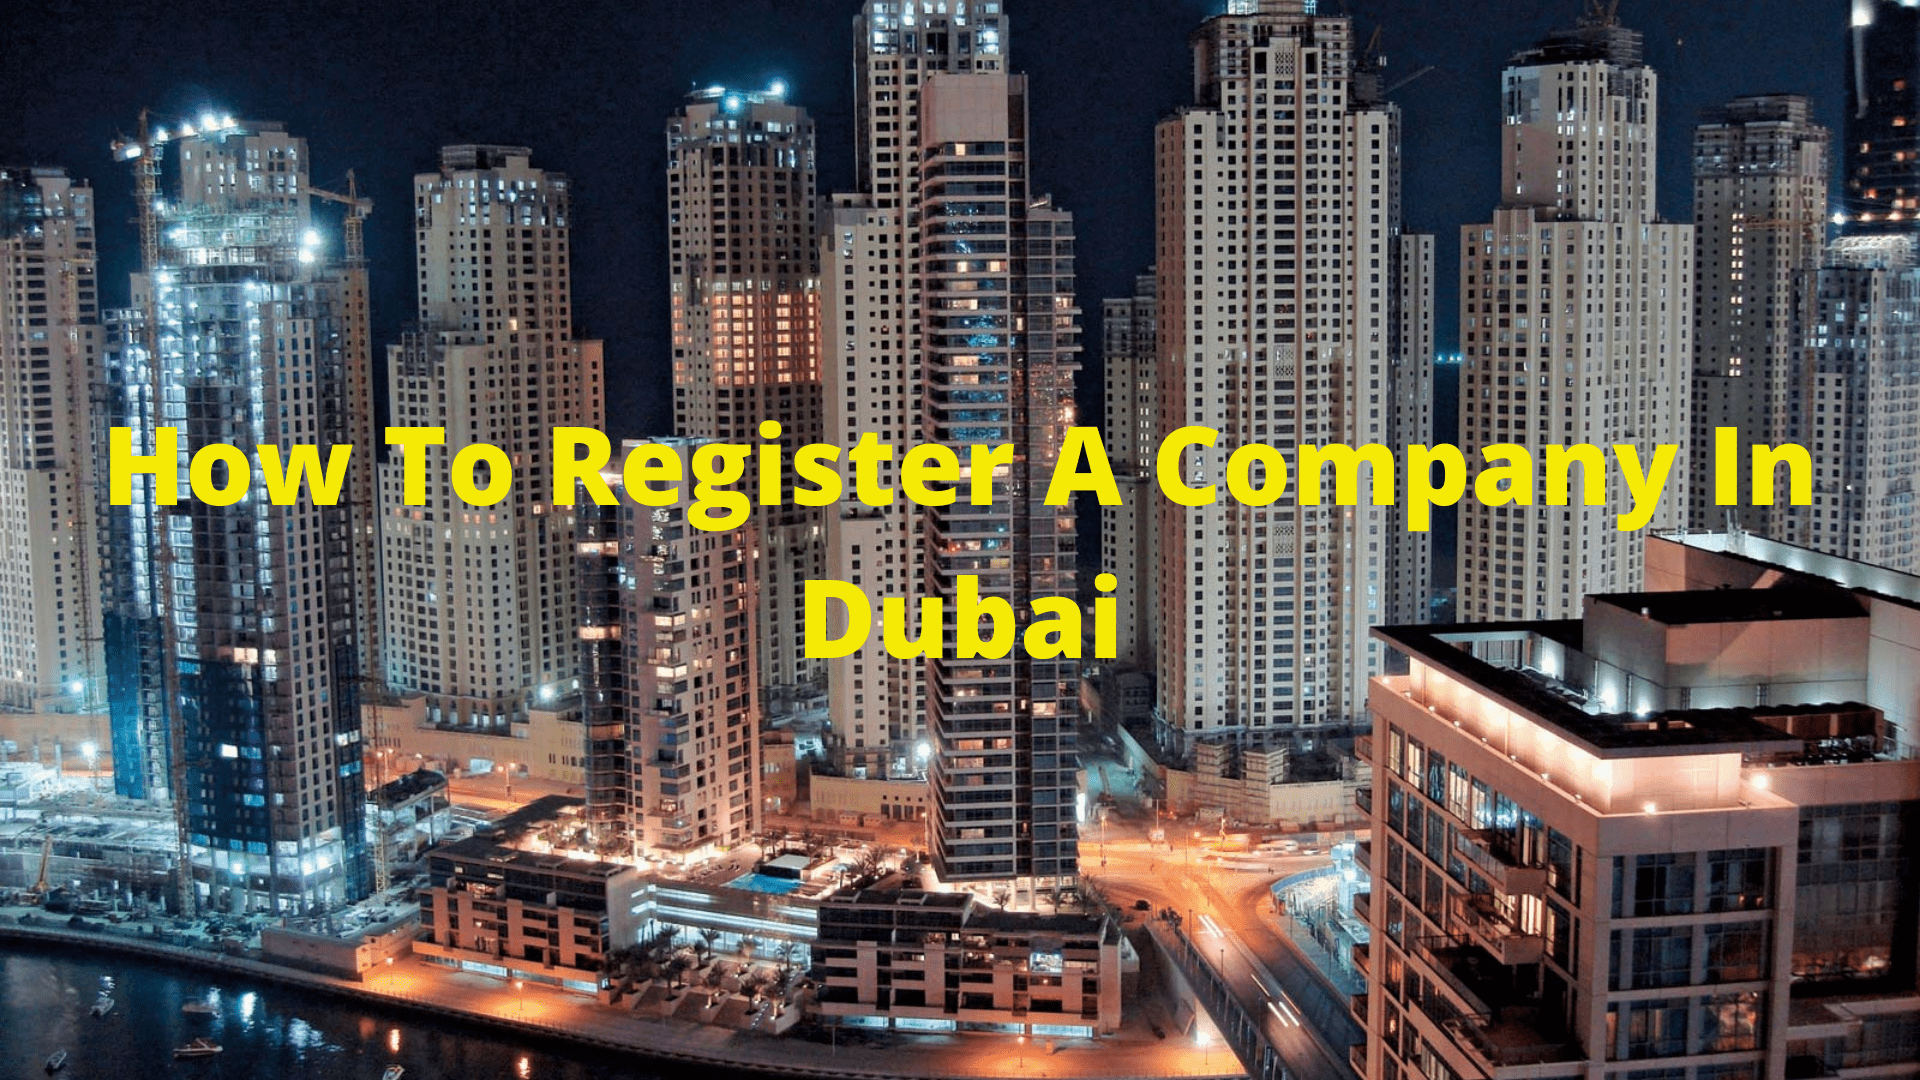 How To Register A Company In Dubai As A Foreigner